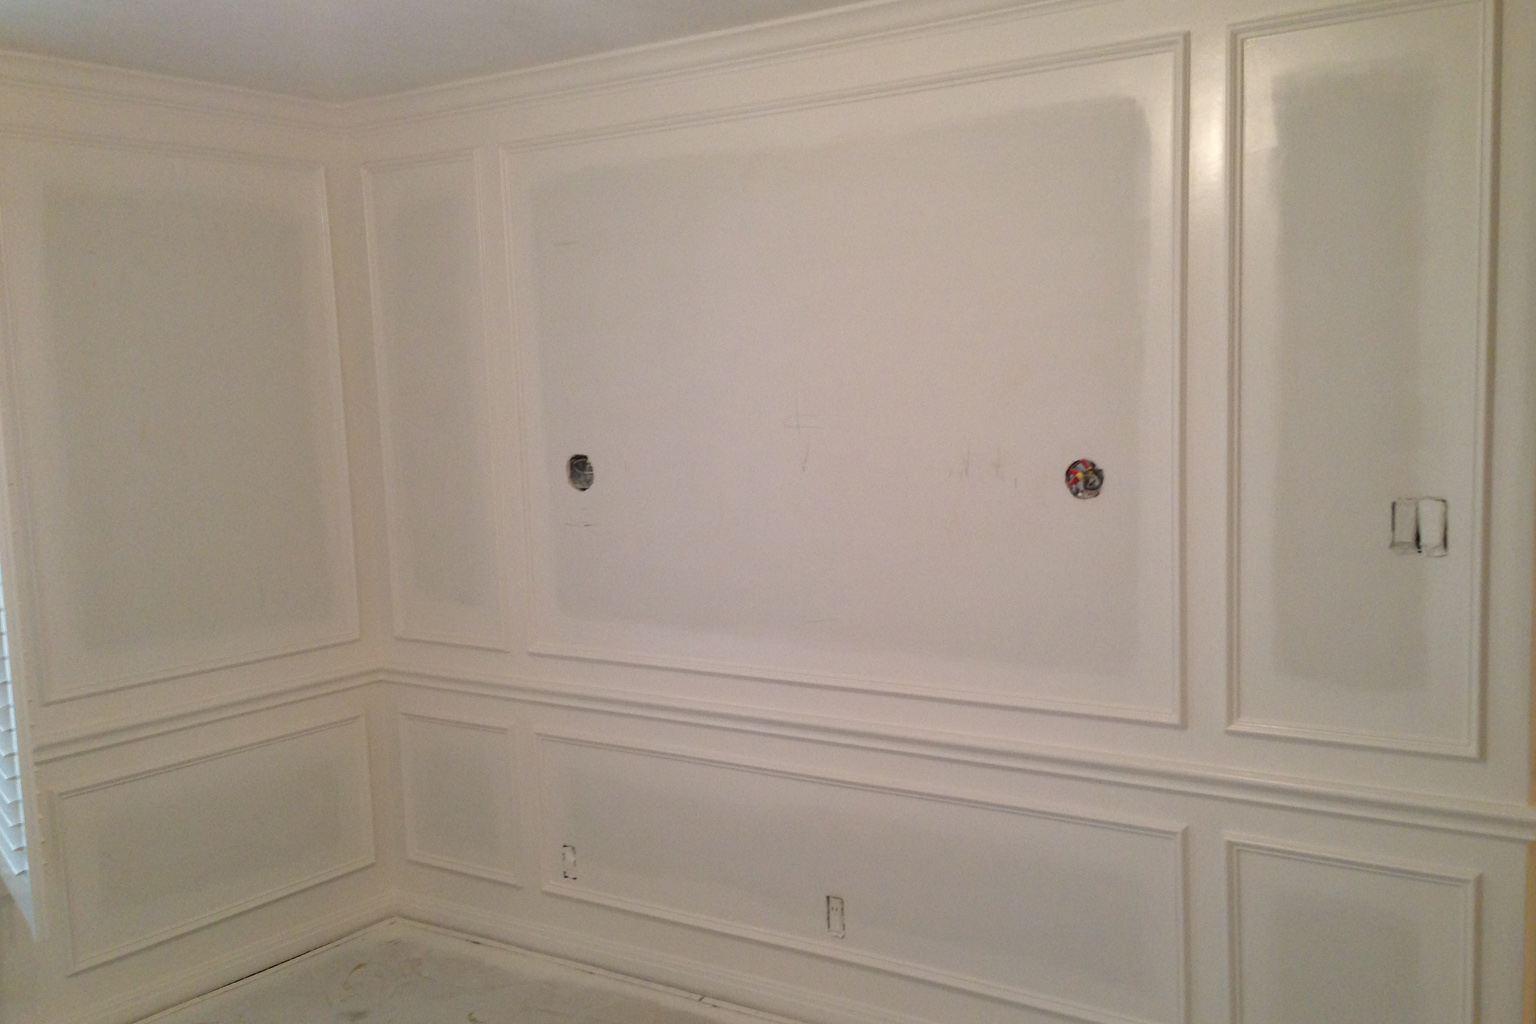 The White Flour enamel is going to look very pretty combined with the soft blue of the walls.